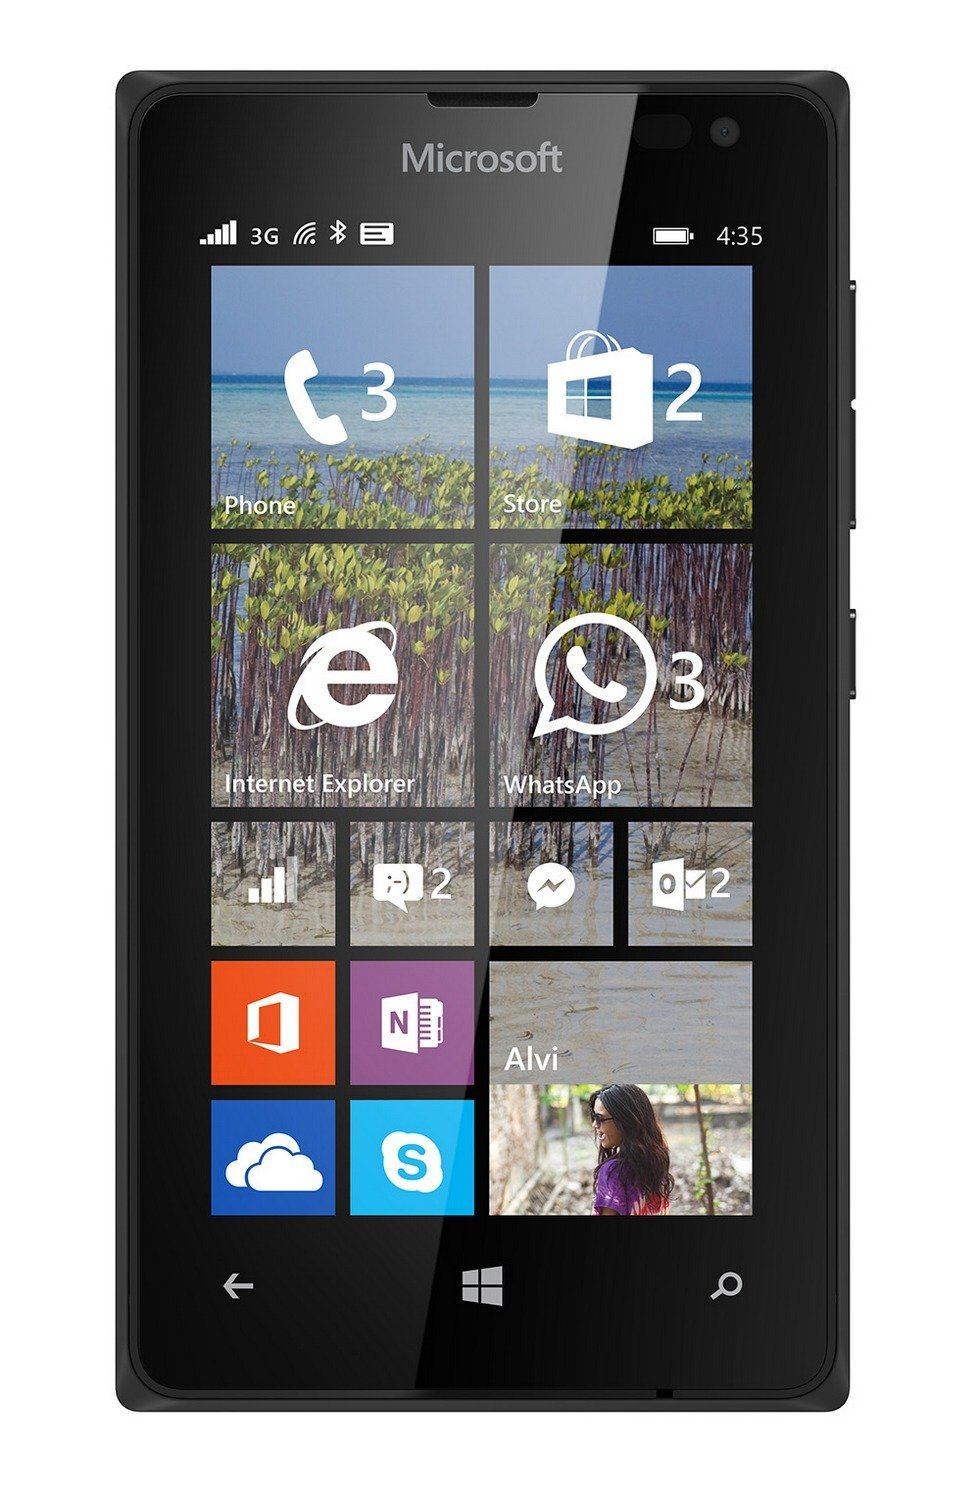 Windows Phone 8: Has Microsoft Work Completed On Mobile Os?